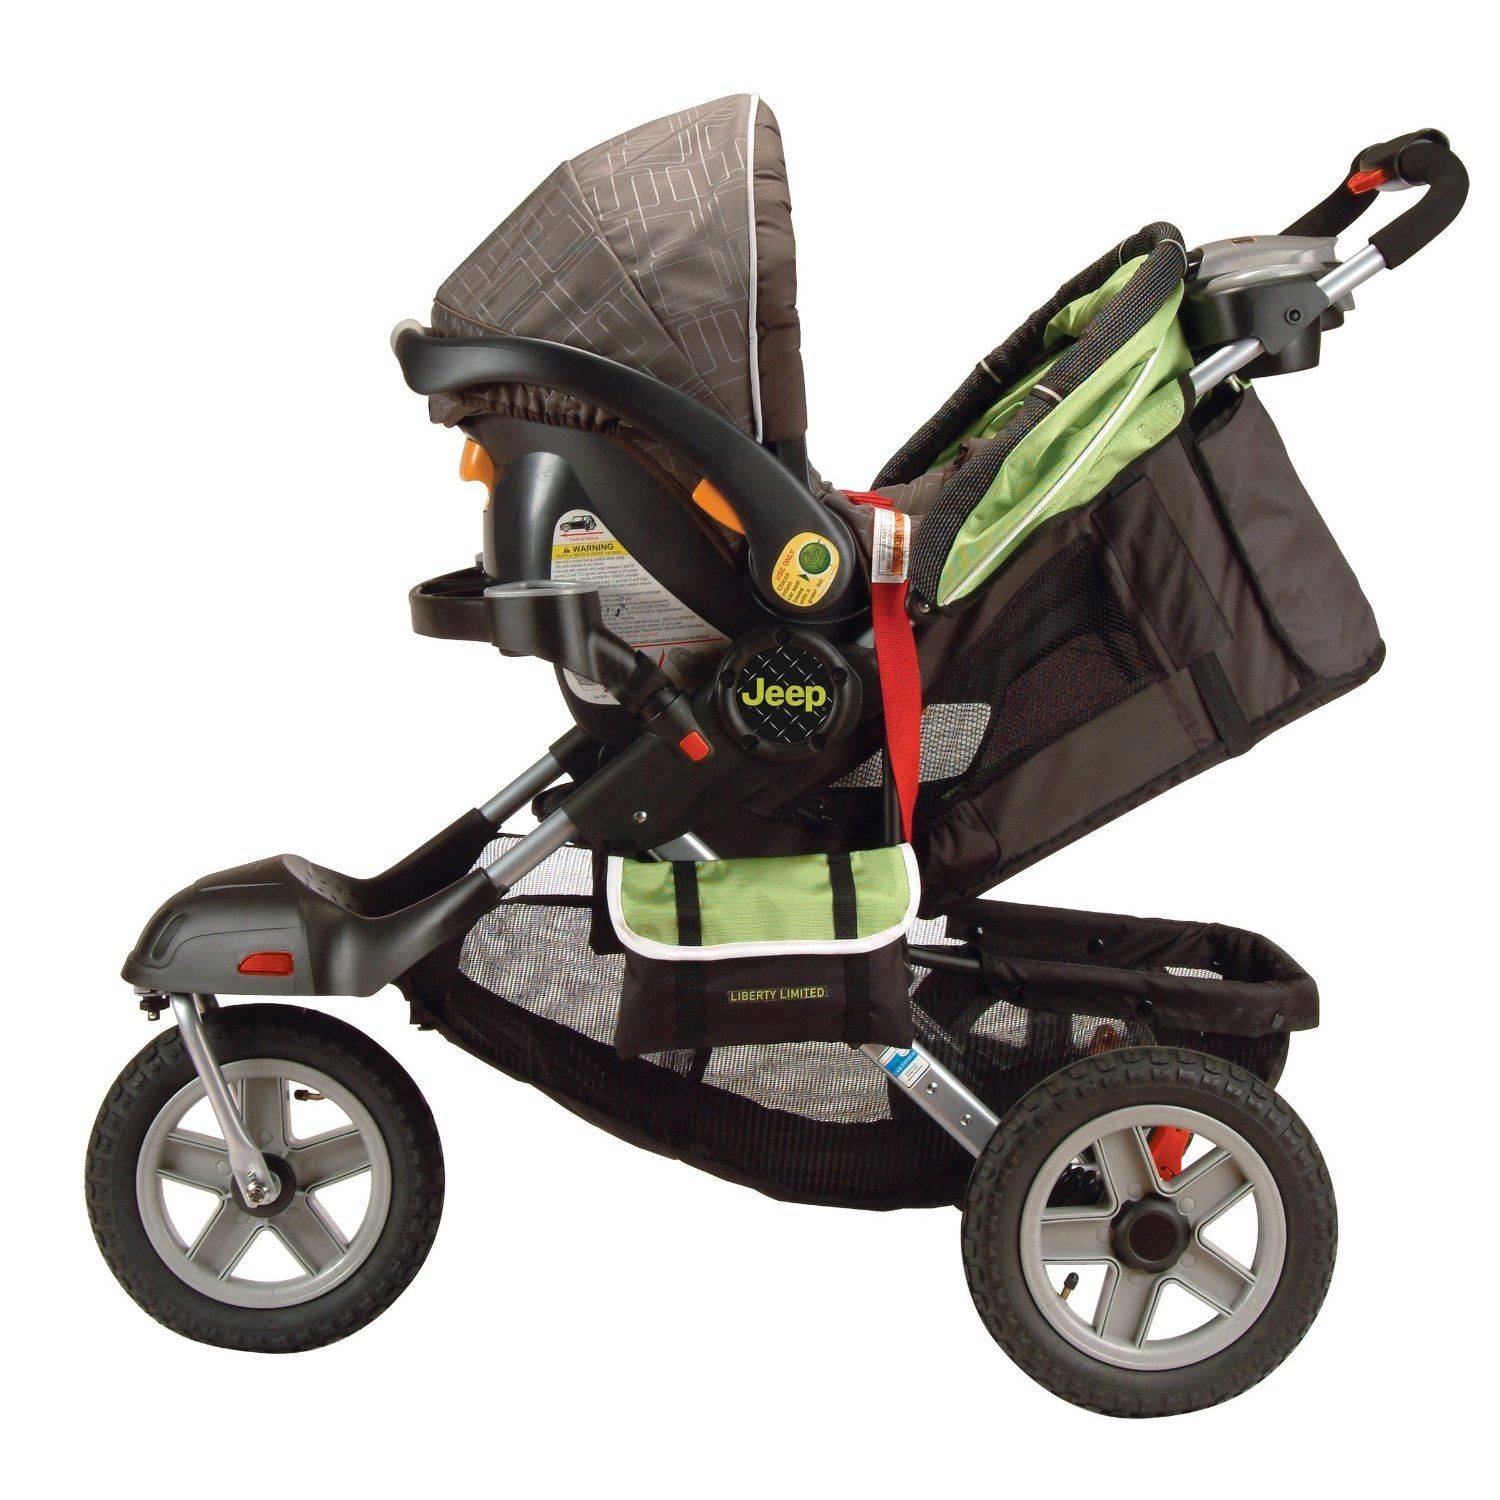 Jeep Stroller Best Ever If Dad Wants One Let Him Get It Lots Of Storage Inflatable Wheels Good Turning Jeep Stroller Best Baby Strollers Baby Strollers